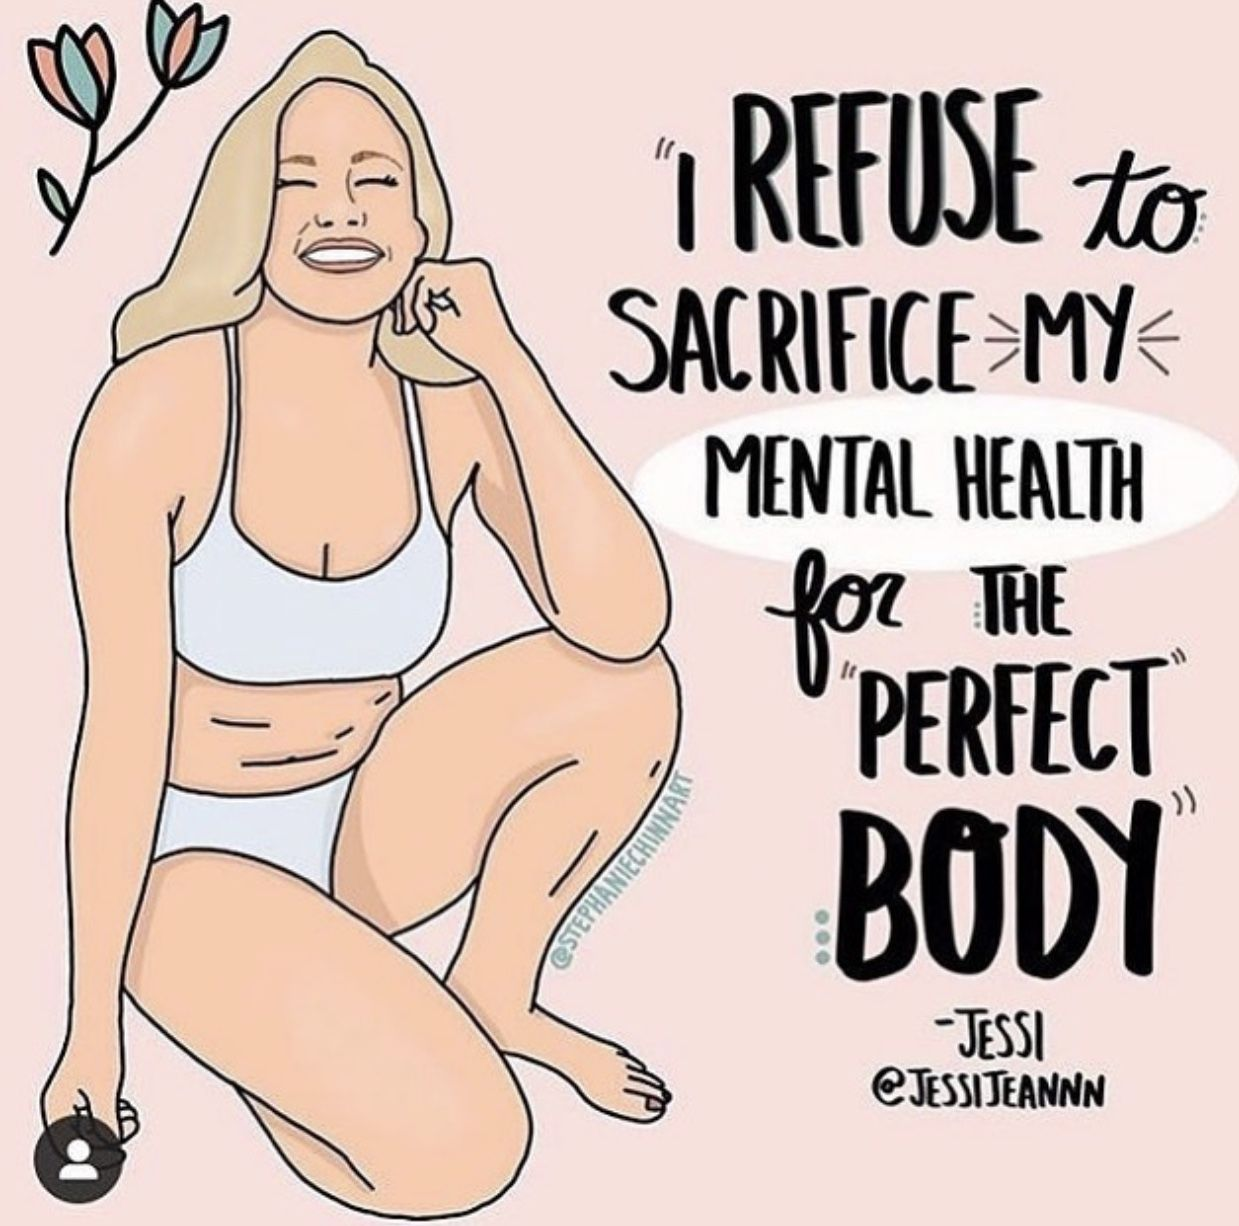 9 Body Confidence Positive Body Image Quotes Detail Oct 15 2015 - Explore Sue Stradling Counsellors board Body Confidence followed by 138 people on Pinterest.